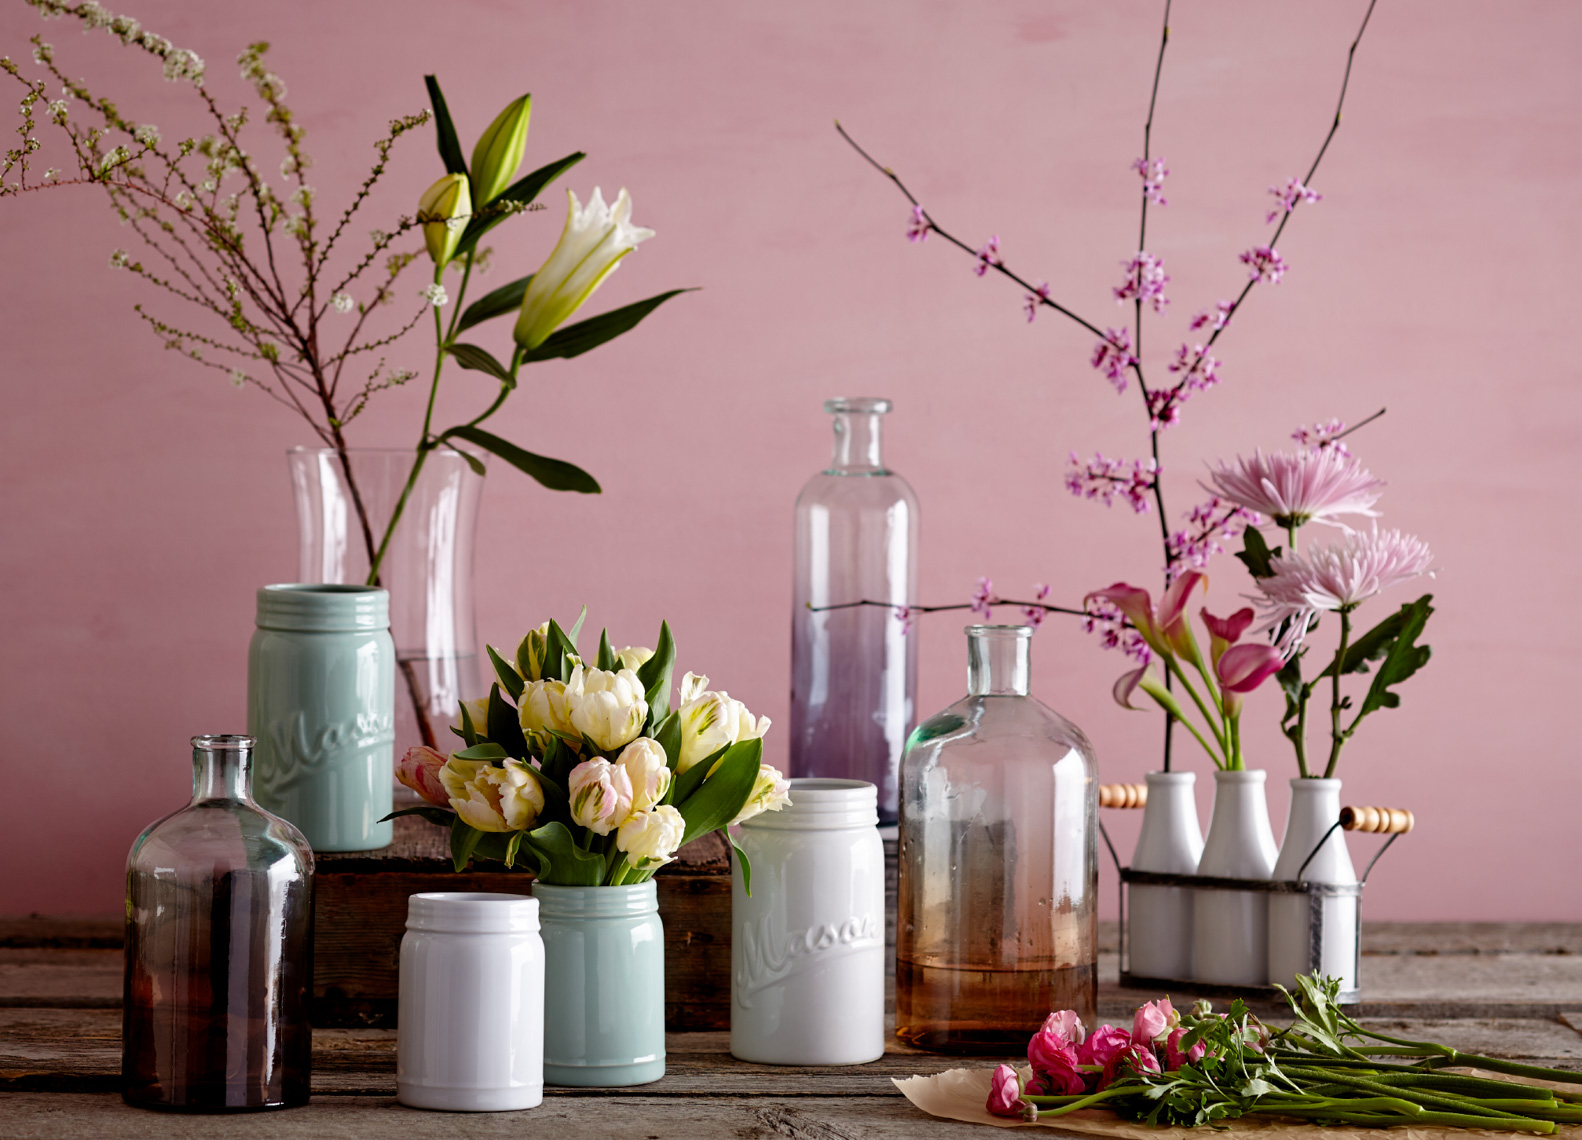 Glass vases and ceramic vases with flowers and branches hilip Harvey Photography, San Francisco, California, still life, interiors, food, lifestyle and product photography San Francisco product photographer